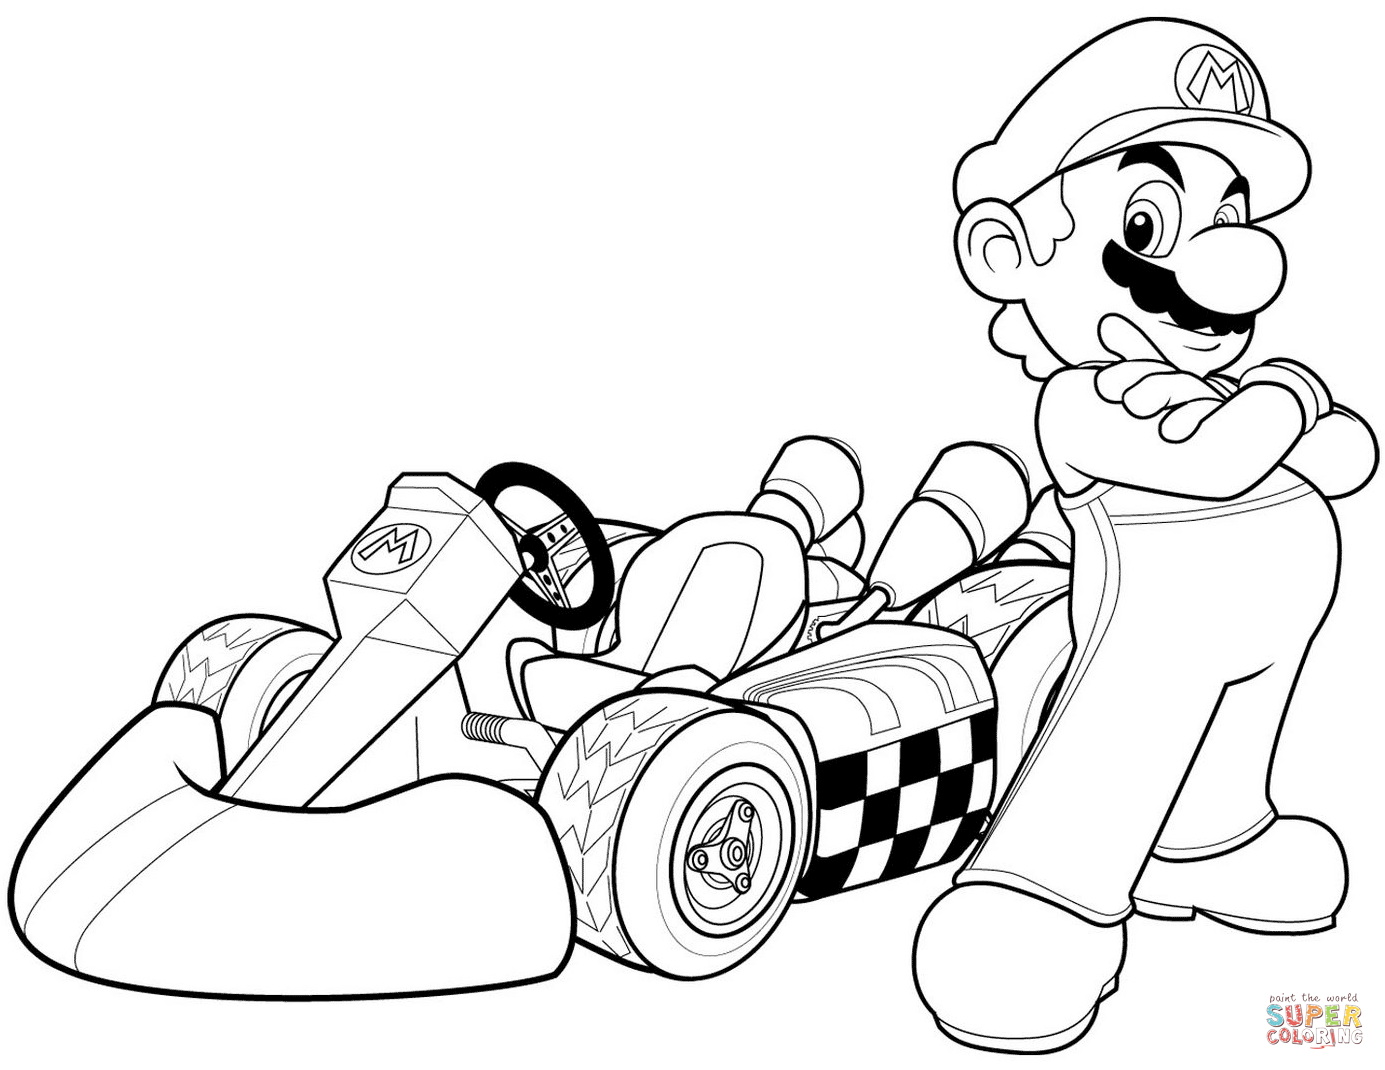 1385x1070 Super Mario Bros. Coloring Pages Free Coloring Pages